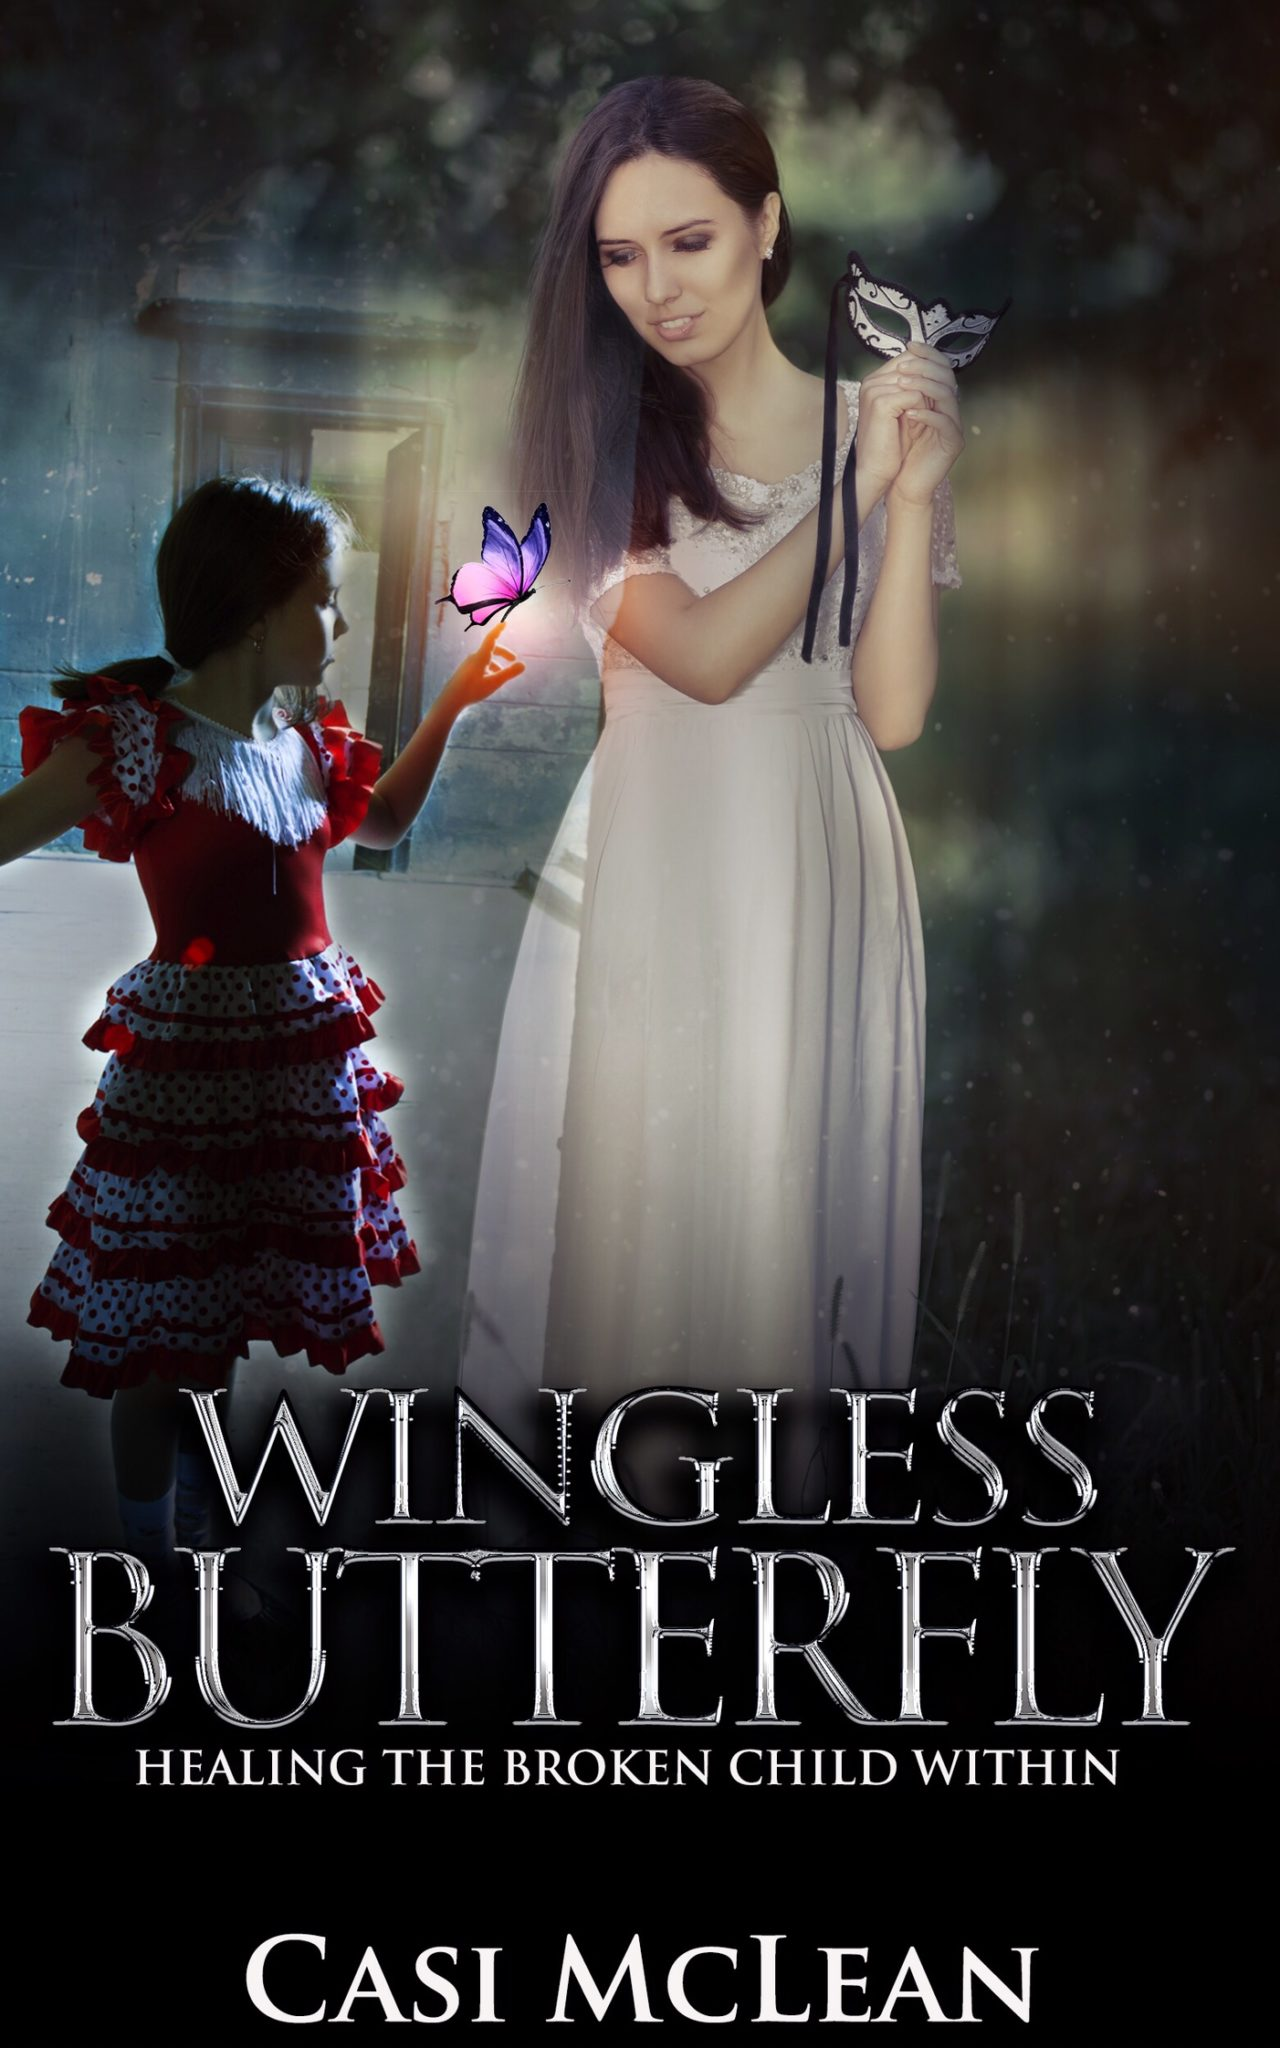 Wingless Butterfly by Casi McLean